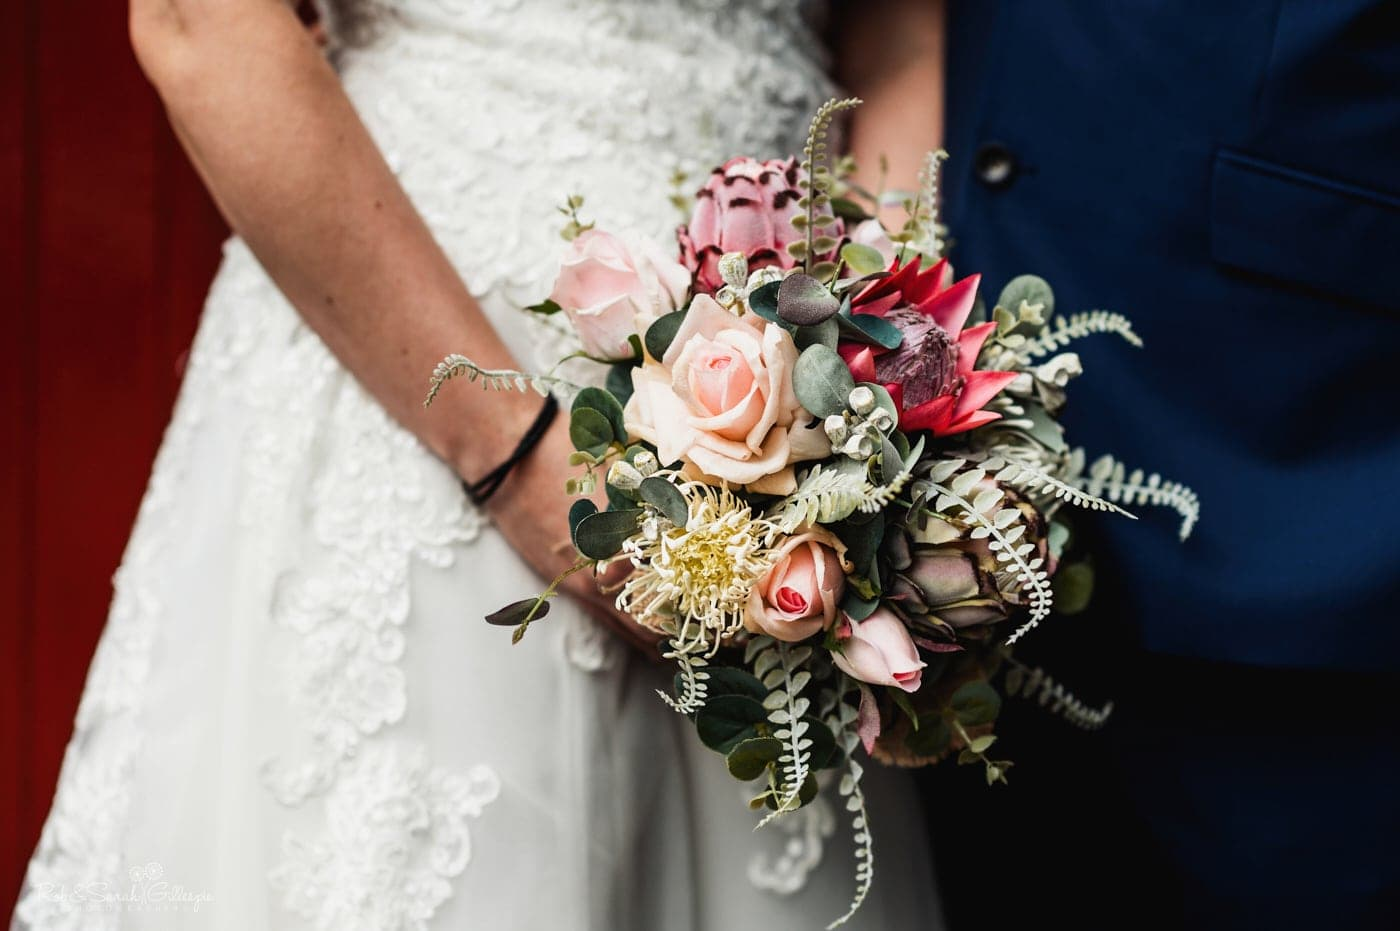 Close up of bridal bouquet at small wedding